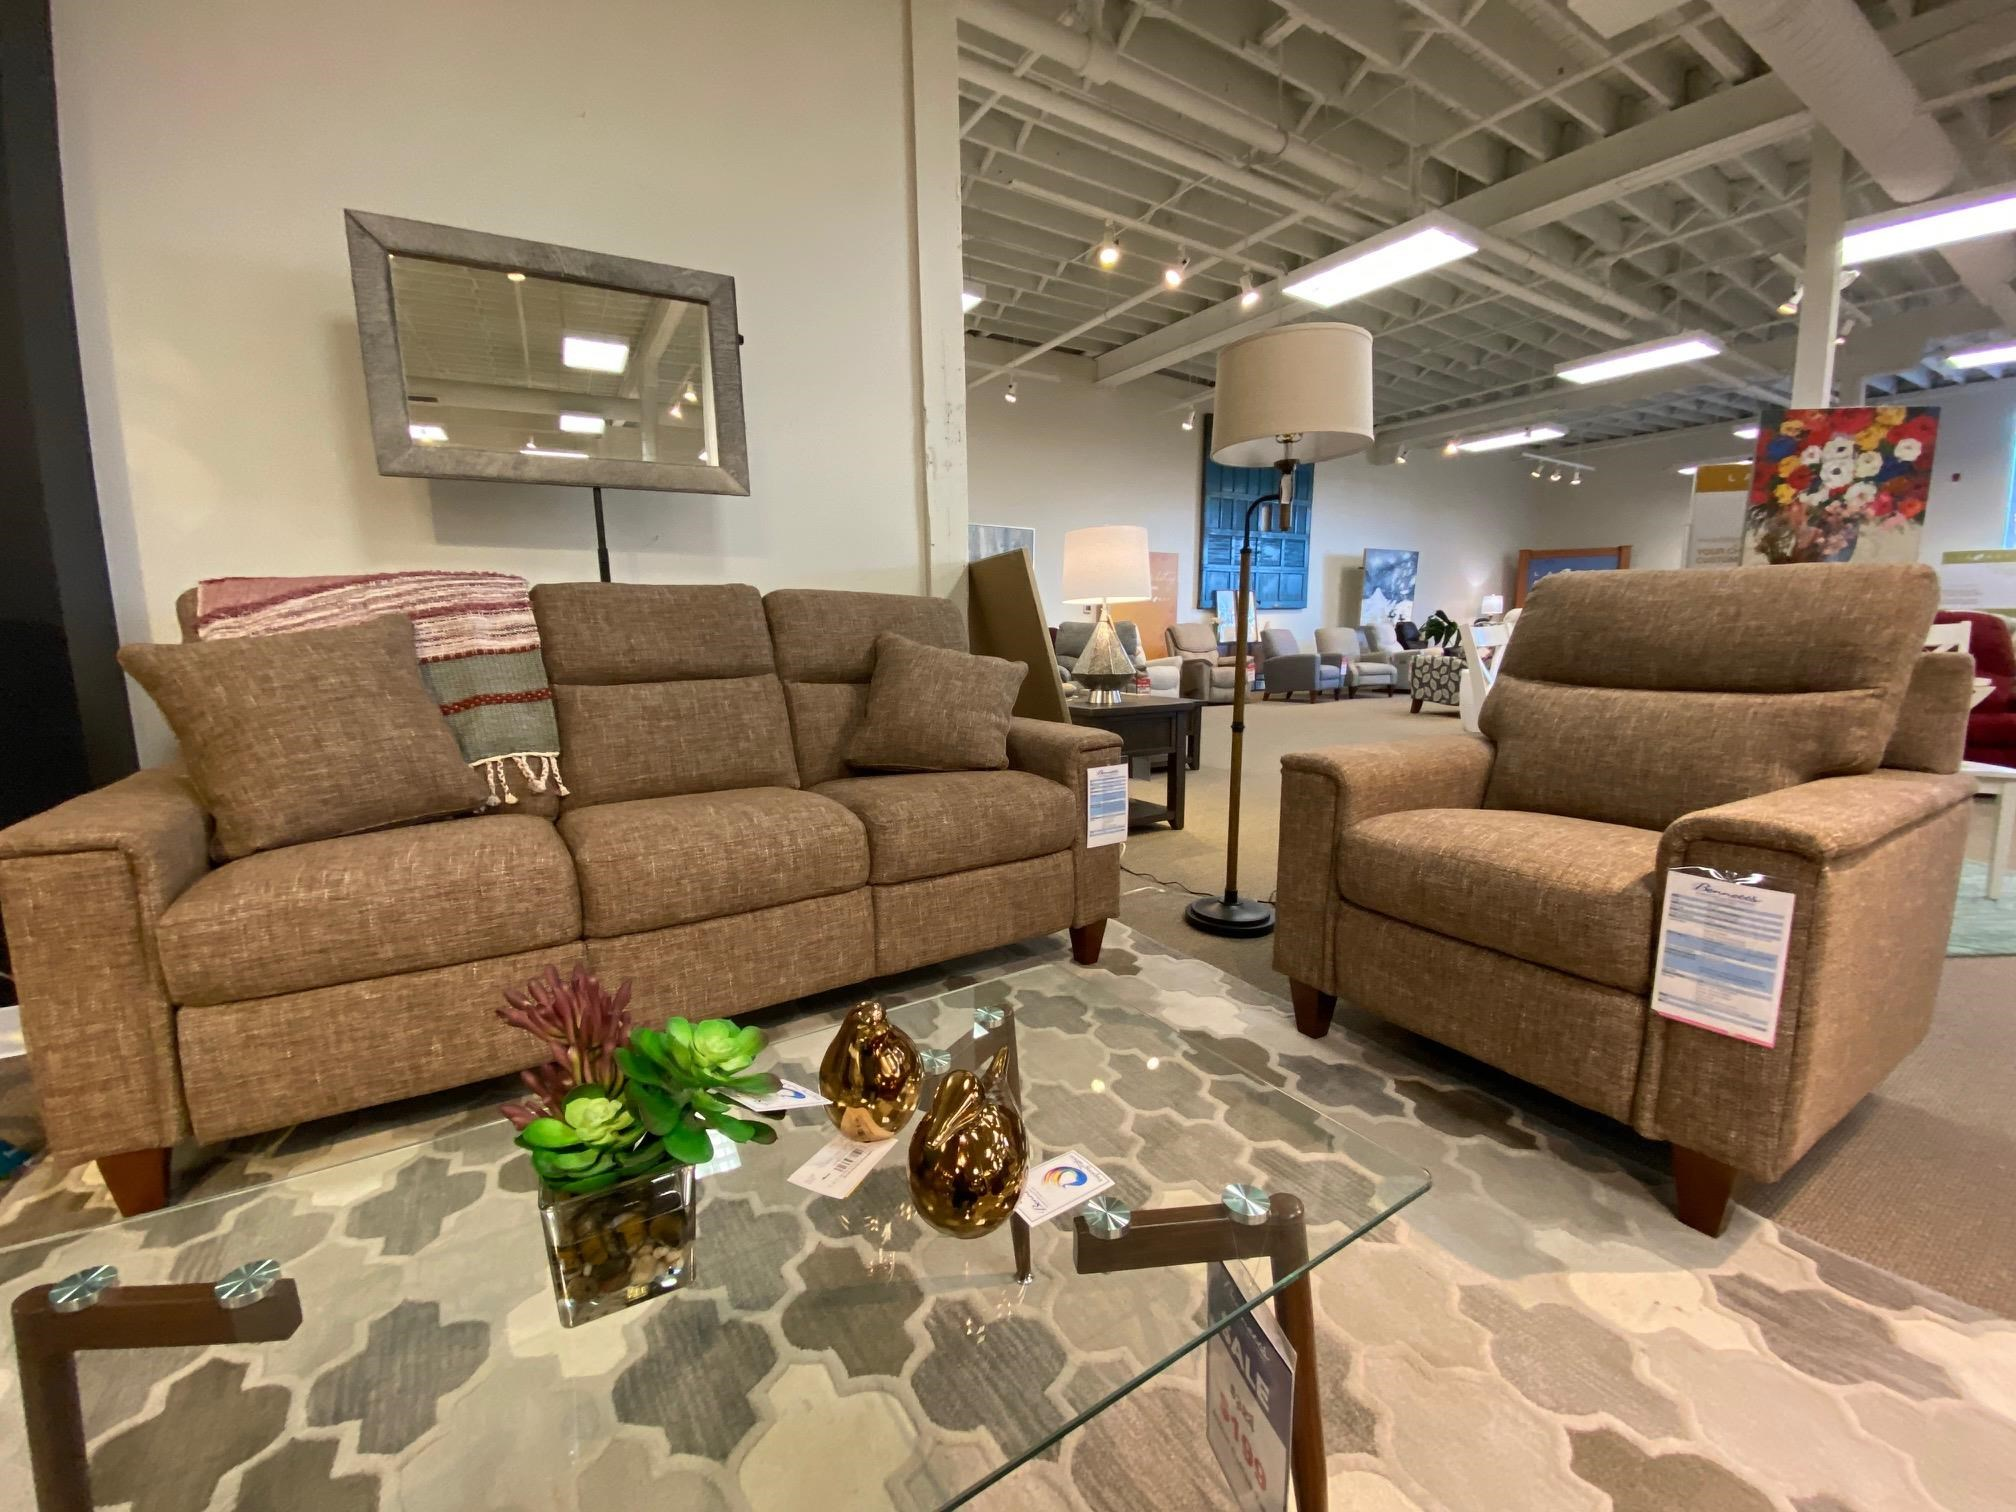 91P-894 Sofa & Chair by La-Z-Boy at Bennett's Furniture and Mattresses